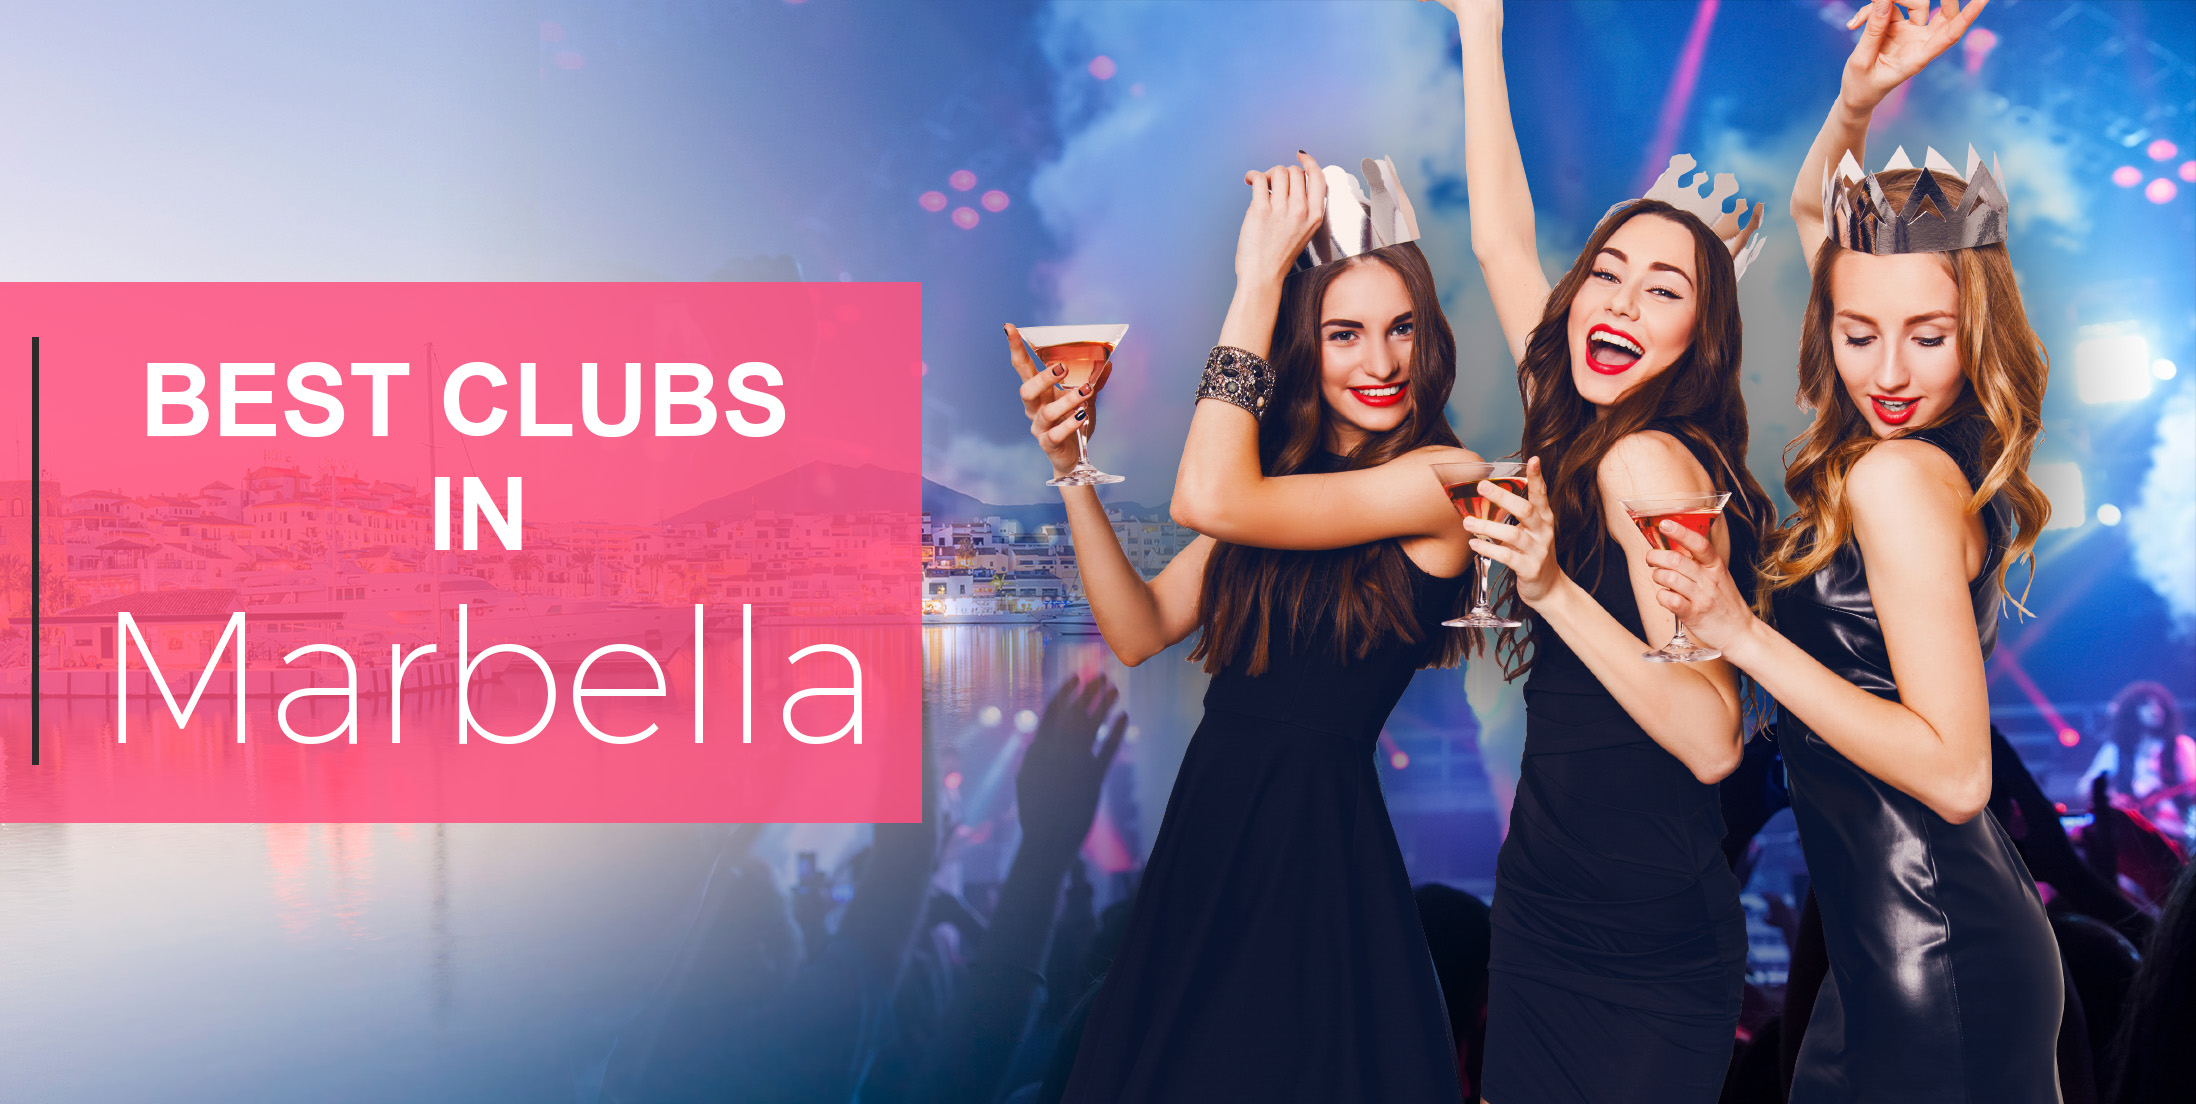 Best Clubs in Marbella